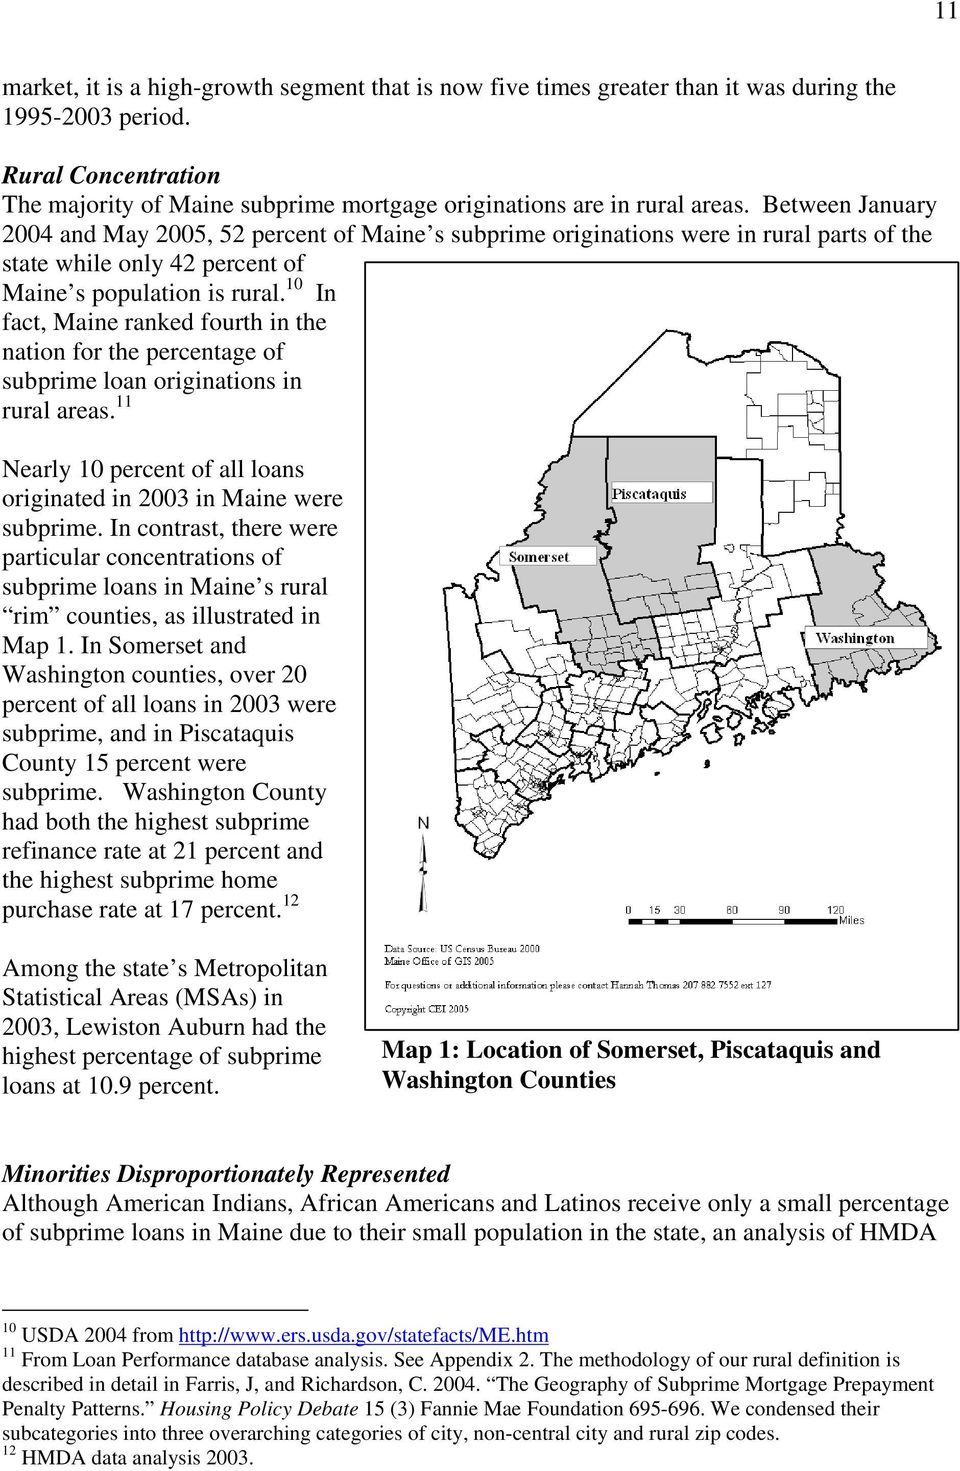 Between January 2004 and May 2005, 52 percent of Maine s subprime originations were in rural parts of the state while only 42 percent of Maine s population is rural.